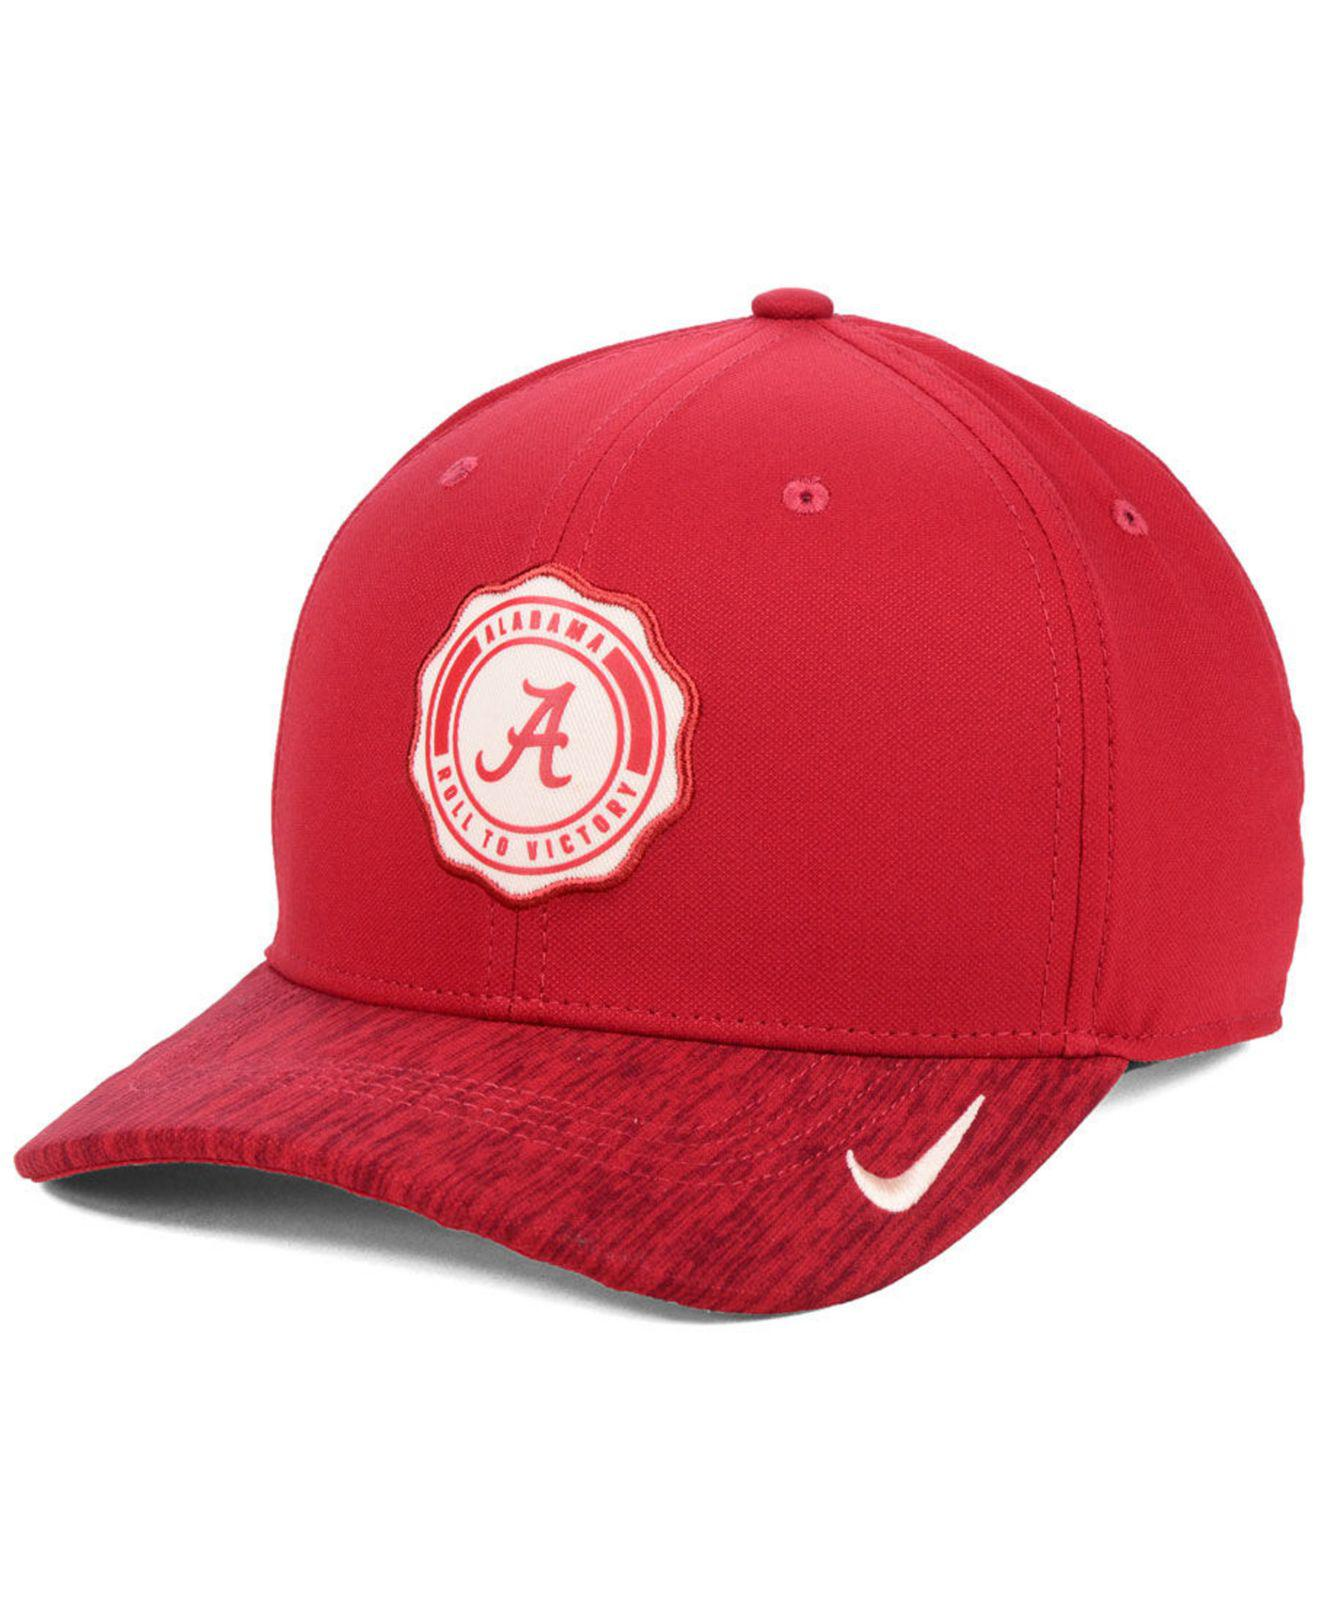 3c576ee166a Lyst - Nike Alabama Crimson Tide Rivalry Cap in Red for Men